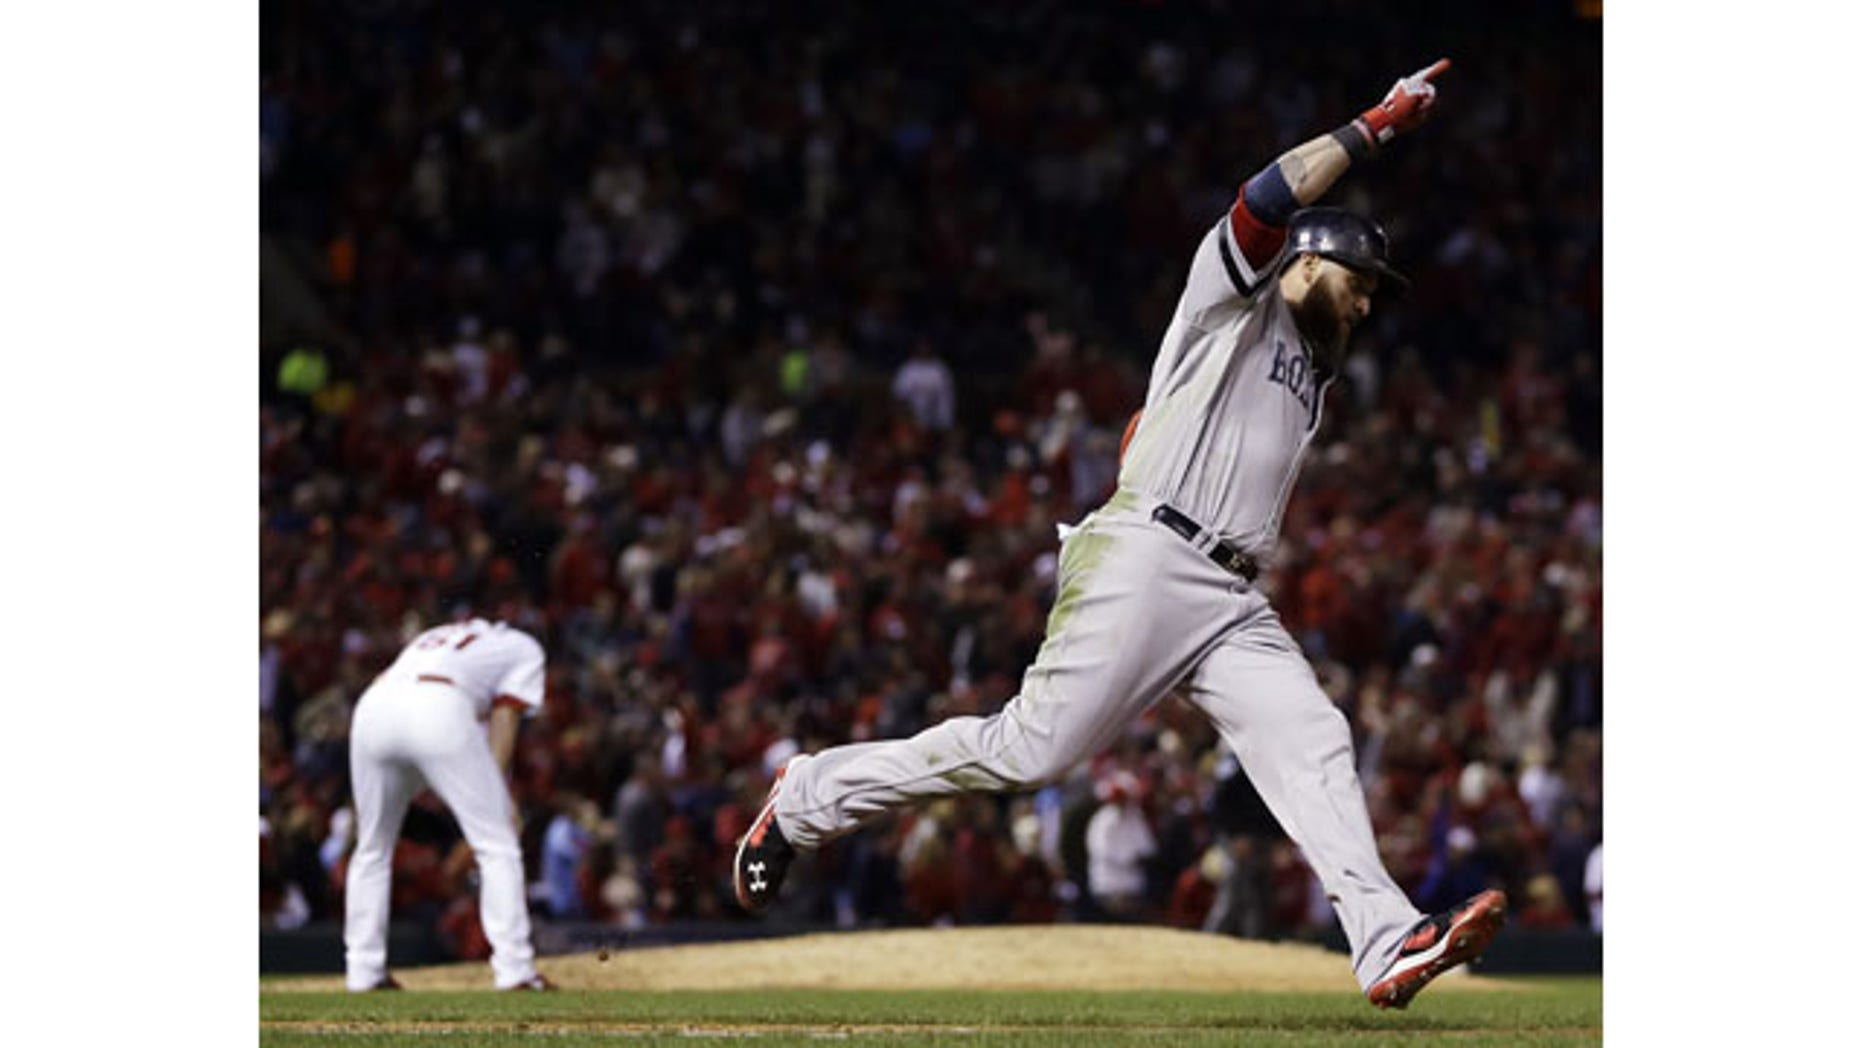 Boston Red Sox's Jonny Gomes celebrates his three-run home run off St. Louis Cardinals relief pitcher Seth Maness, left, during the sixth inning of Game 4 of baseball's World Series Sunday, Oct. 27, 2013, in St. Louis. (AP Photo/Jeff Roberson)